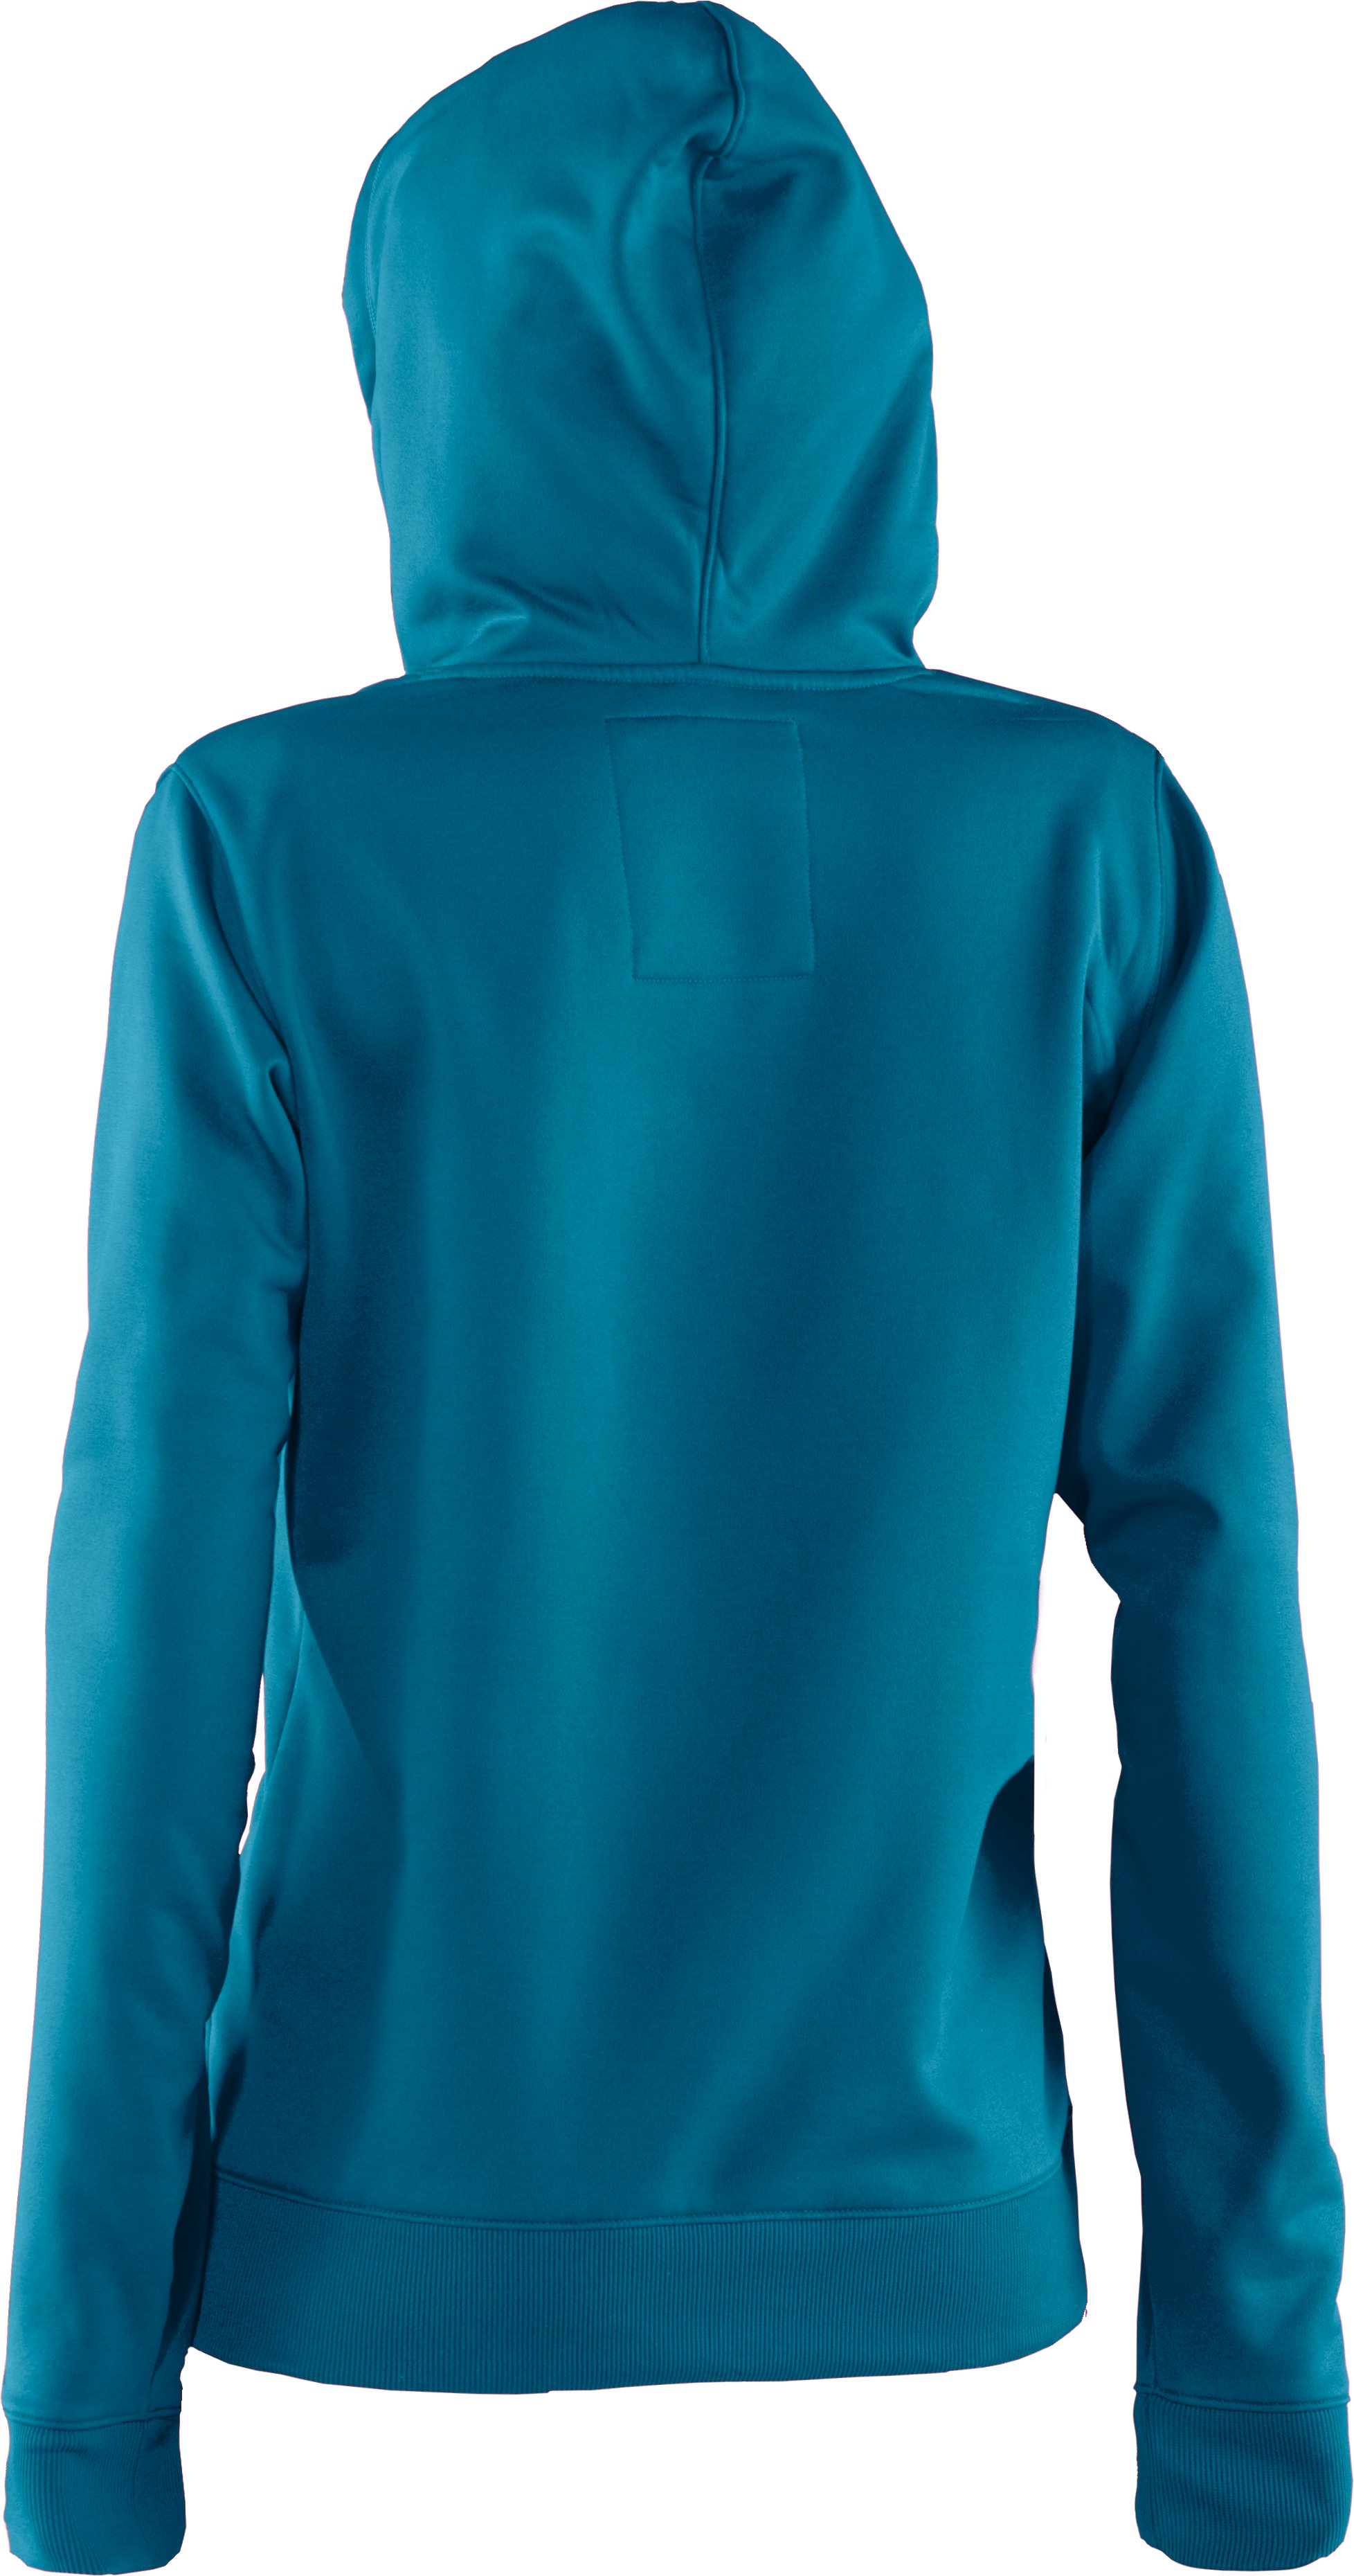 Women's Armour® Fleece Storm Big Logo Hoodie, Break, undefined